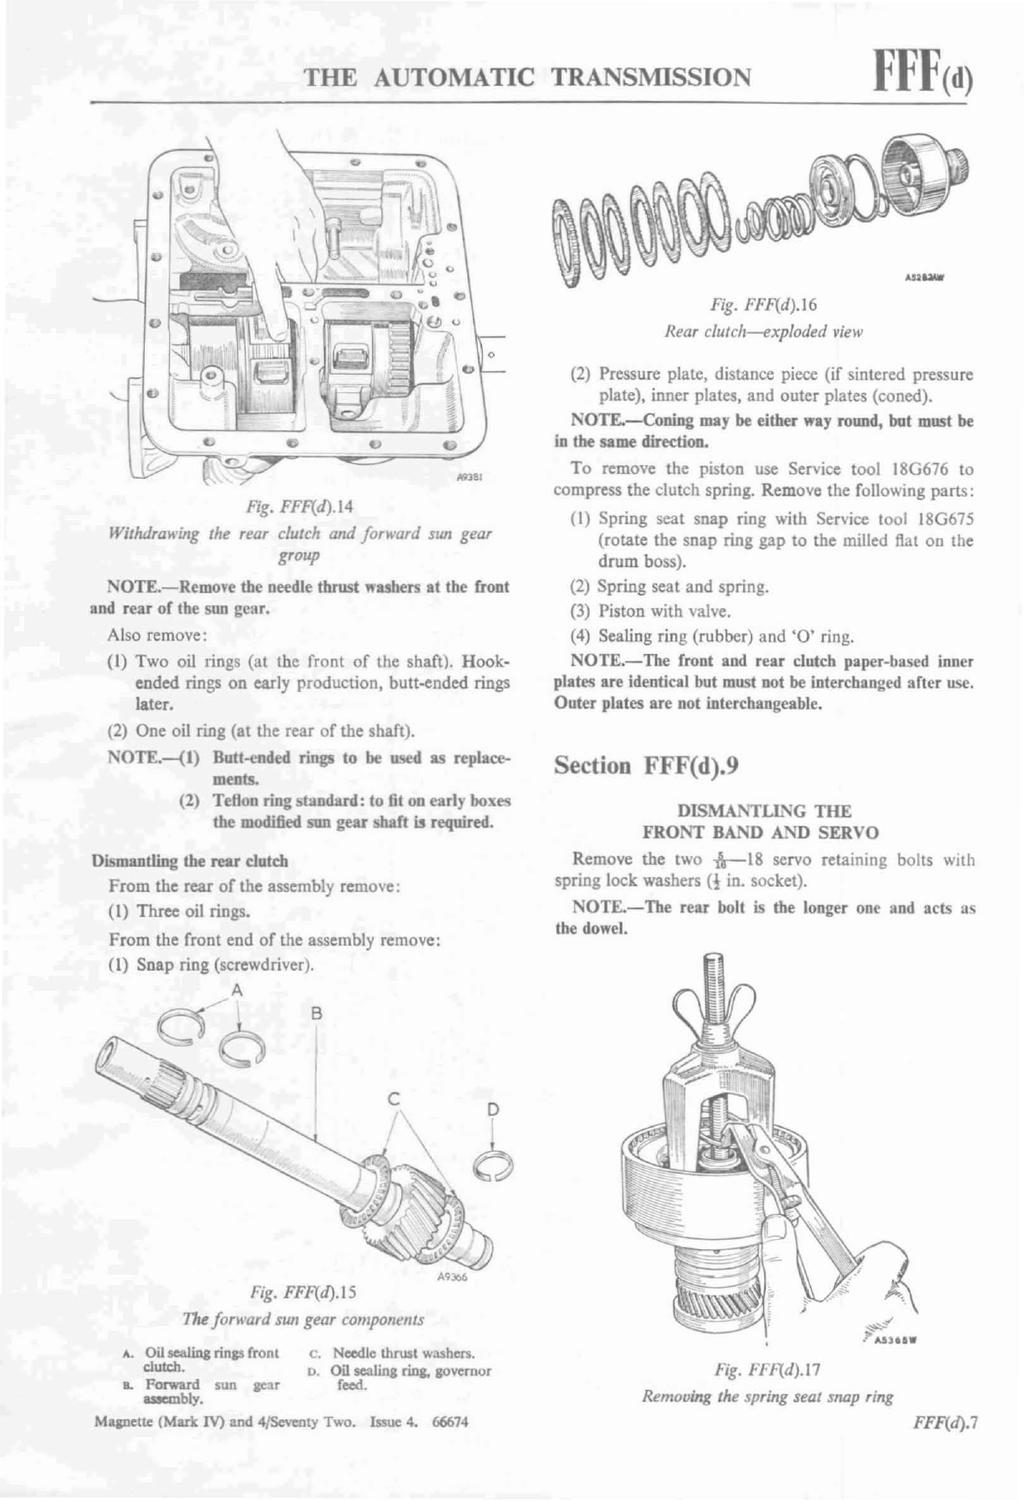 Bmc Auto By Morris Oxford Issuu Manual Transmission Clutch Diagram 1 Exploded View Of The